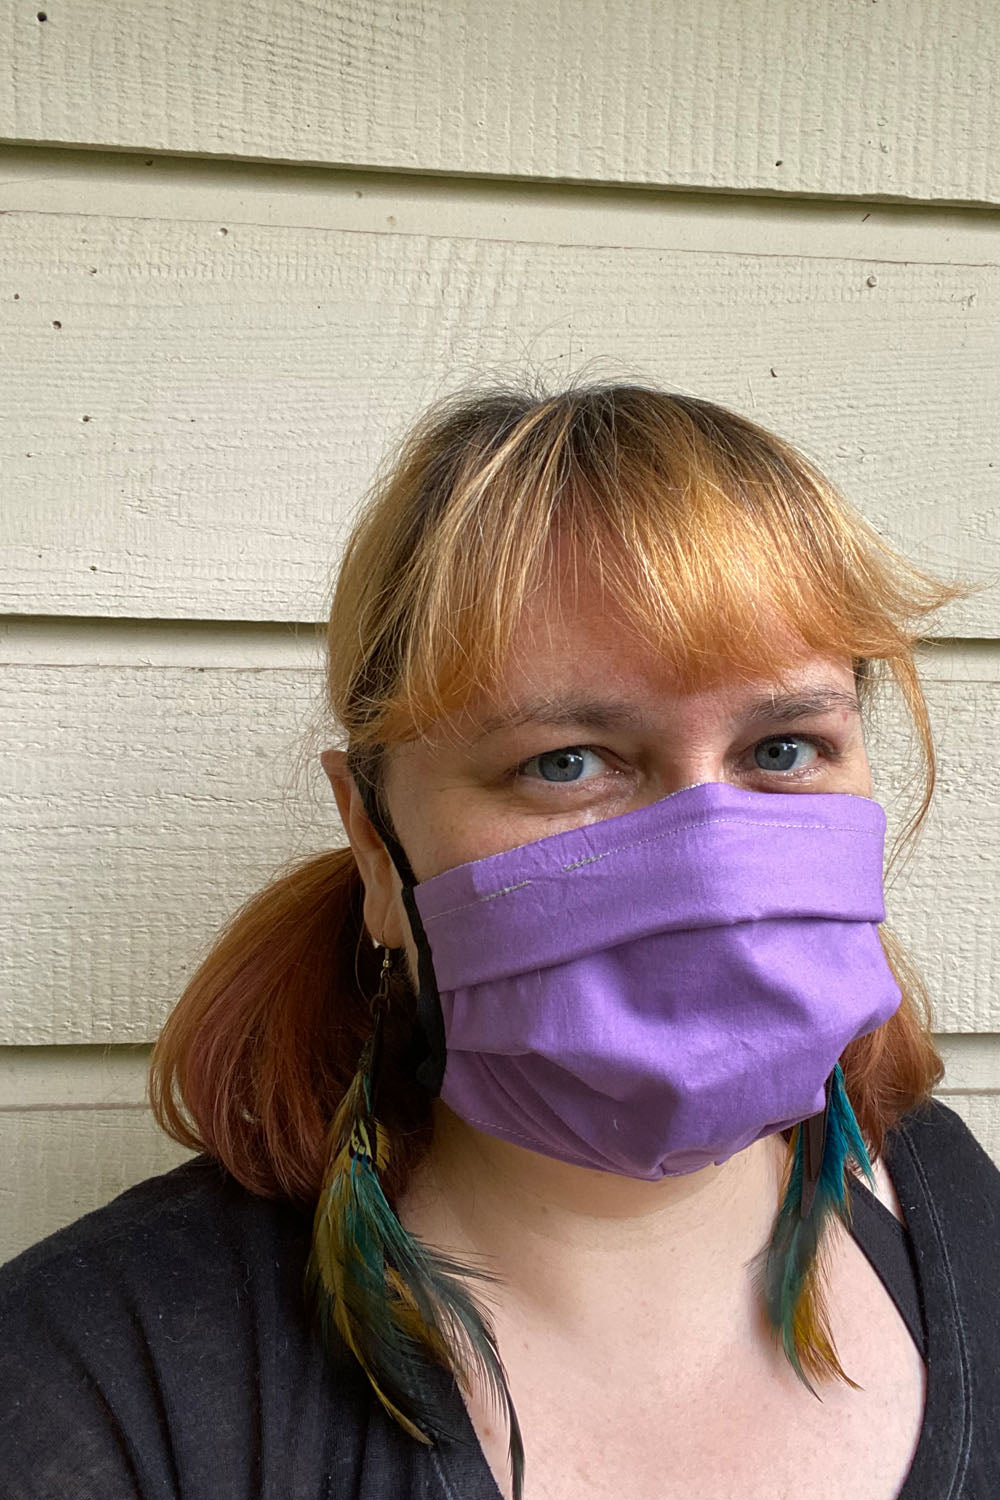 Woman wears a purple fabric face covering, feather earrings, and black t-shirt. She is smizing behind her mask. This is a portrait view of her. The background is a beige painted wood siding.